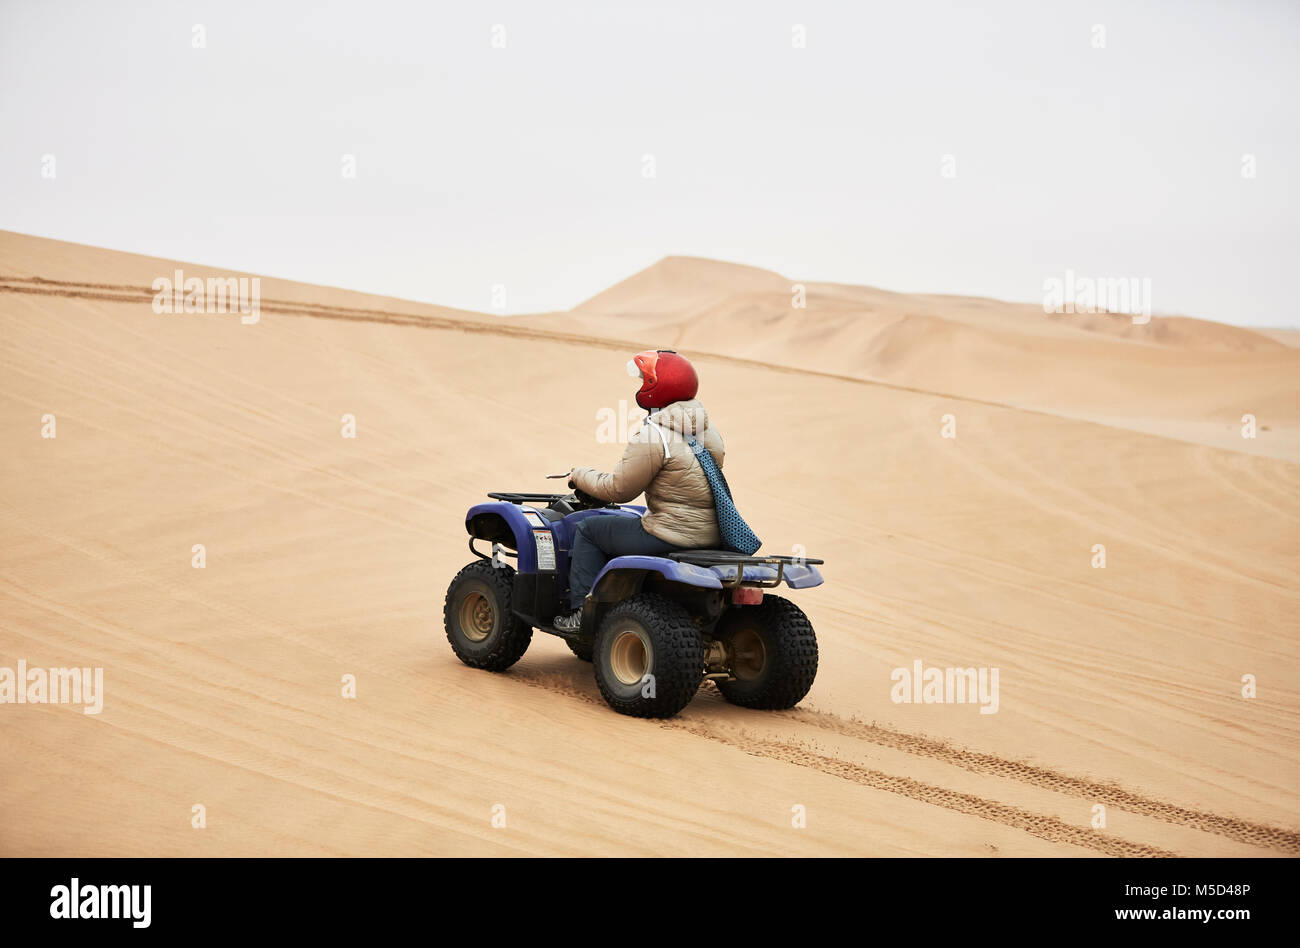 Woman drives with Quad over sand dunes at Swakopmund, Namibia - Stock Image